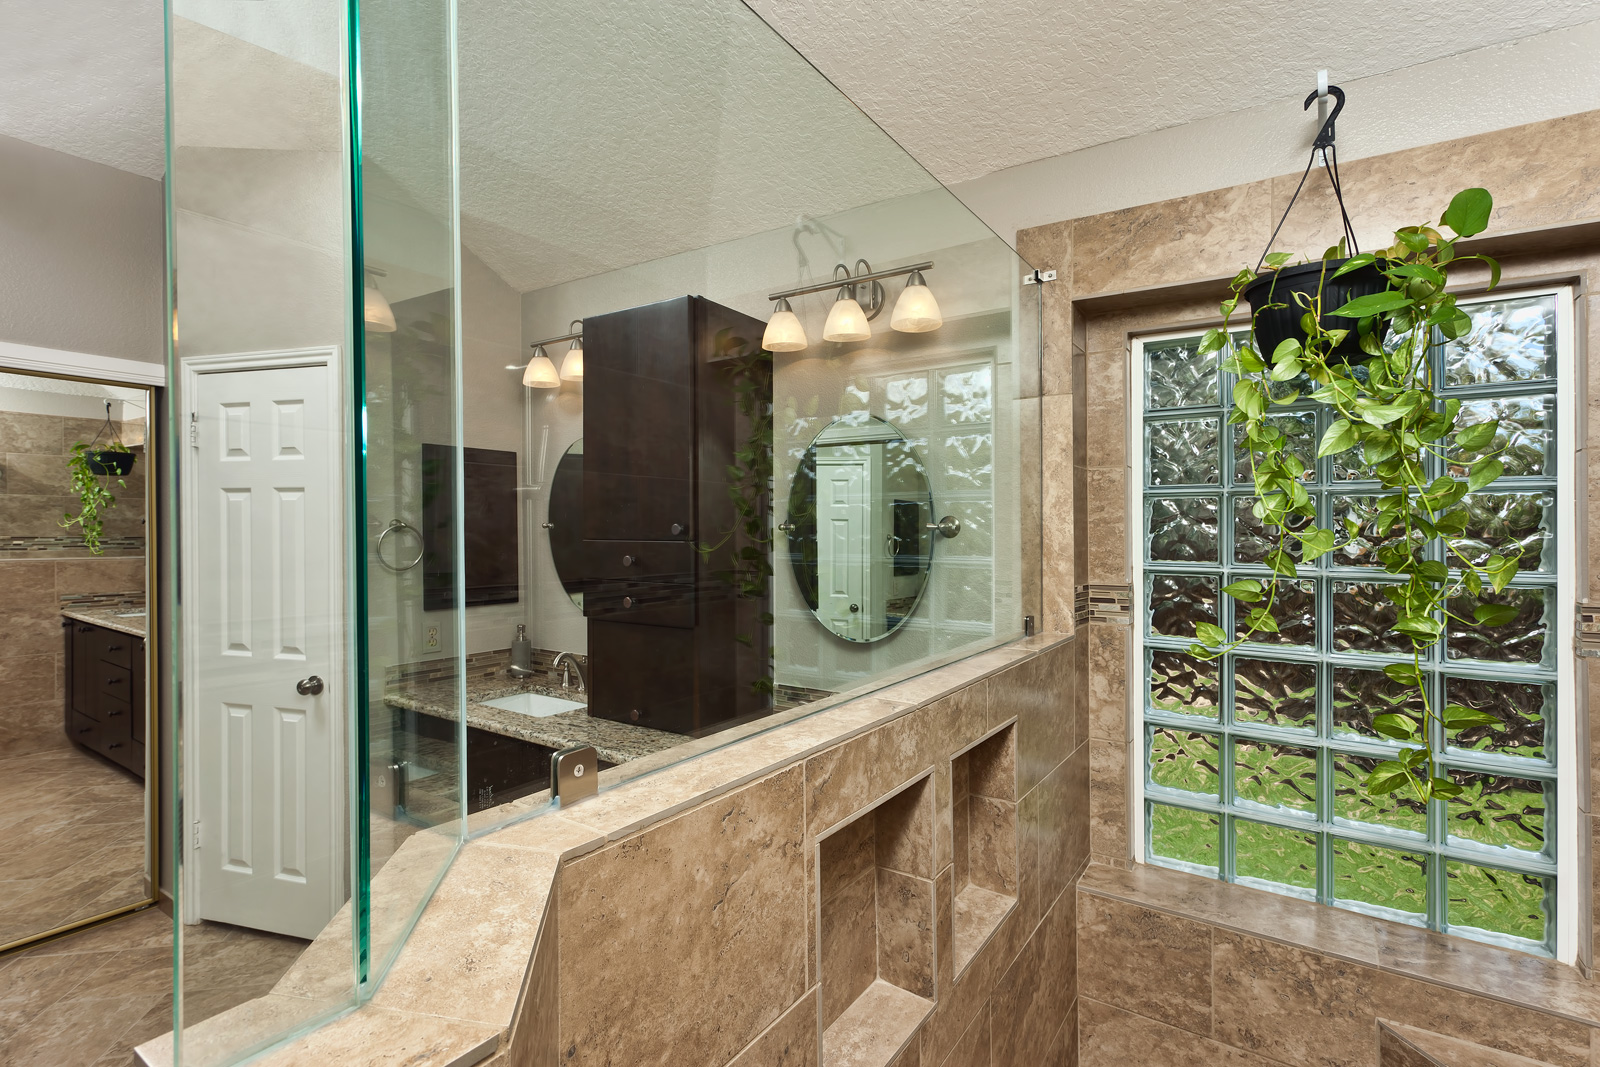 . Home Remodel San Antonio  TX   Bathroom   Kitchen Remodeling